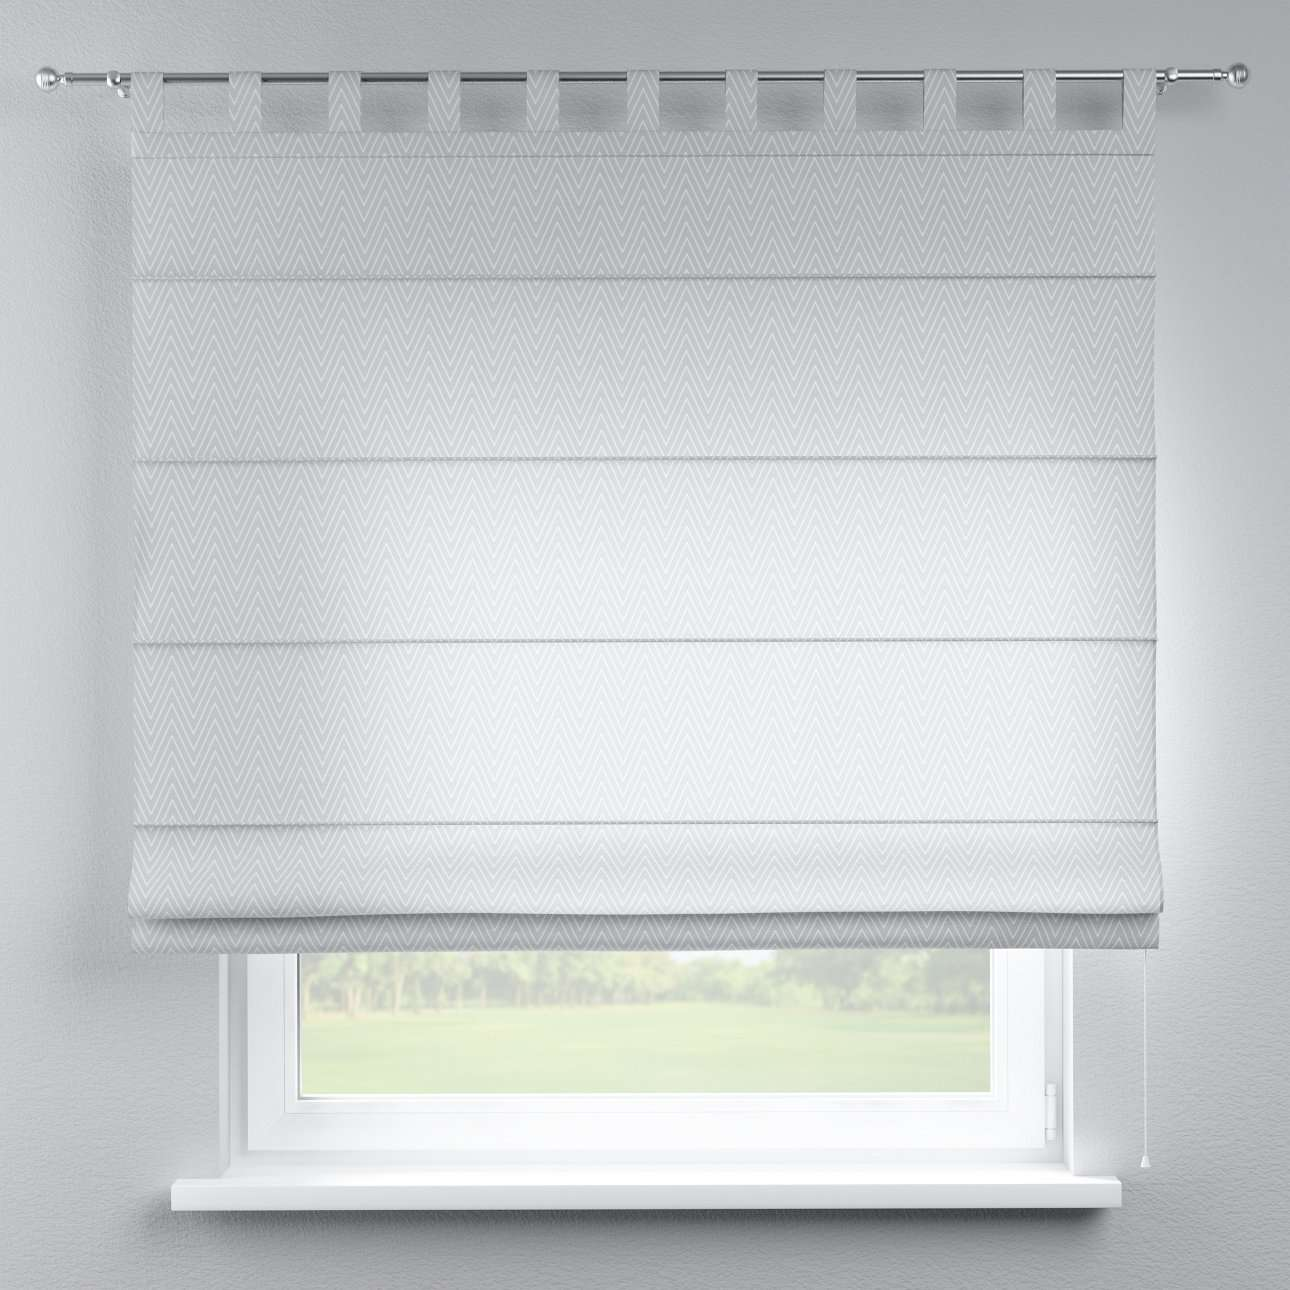 Verona tab top roman blind 80 x 170 cm (31.5 x 67 inch) in collection Brooklyn, fabric: 137-87